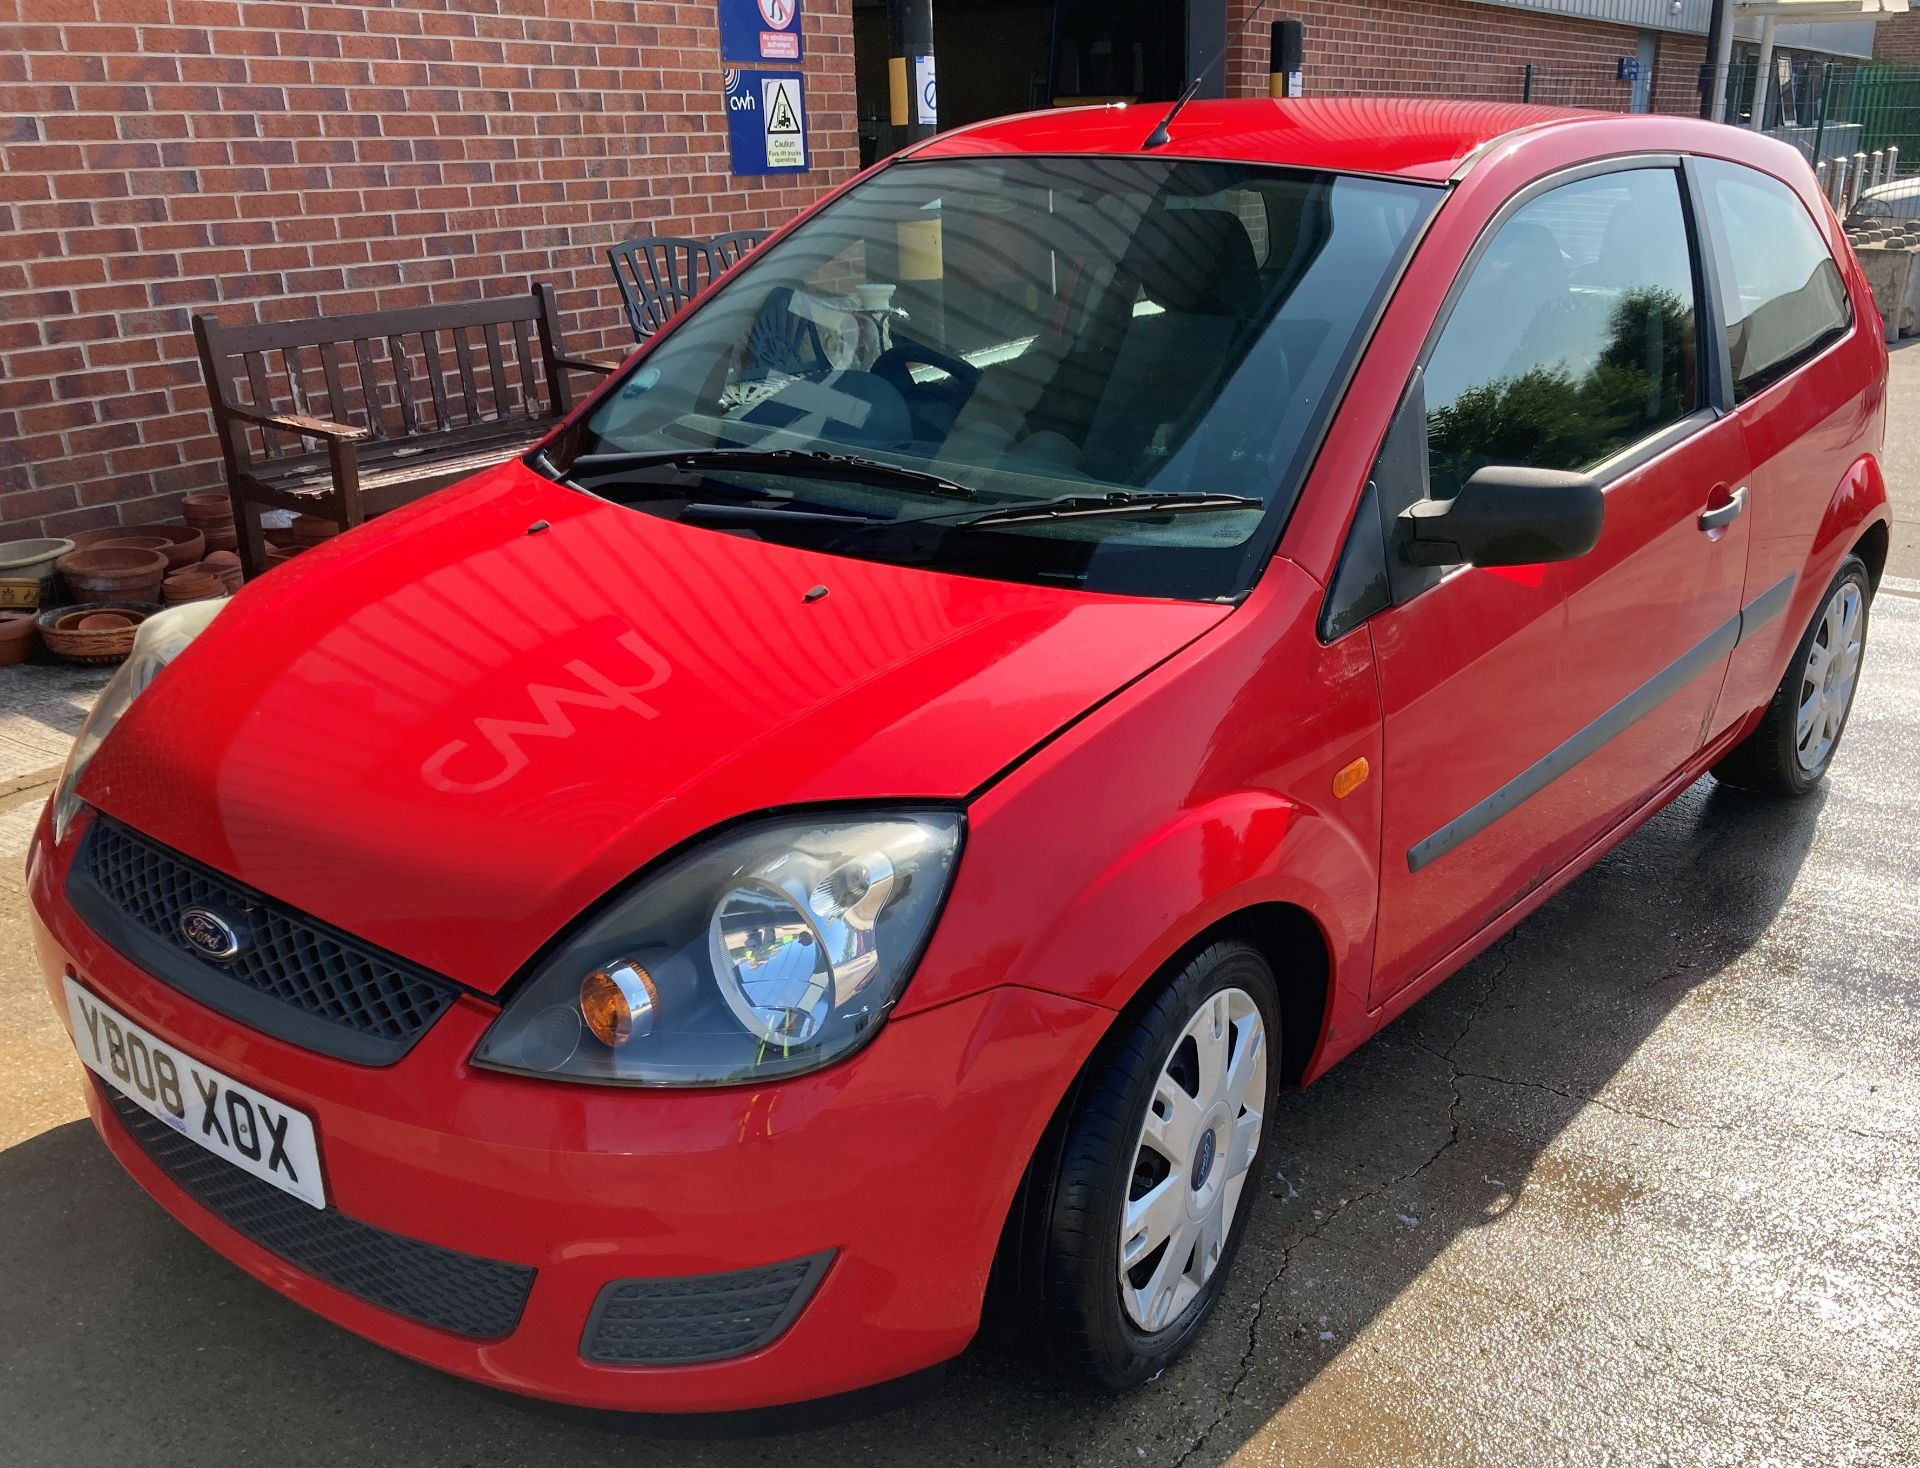 FROM A DECEASED ESTATE FORD FIESTA STYLE 1.2 3 door hatchback - petrol - red Reg No: YB08 XOX Rec. - Image 6 of 10